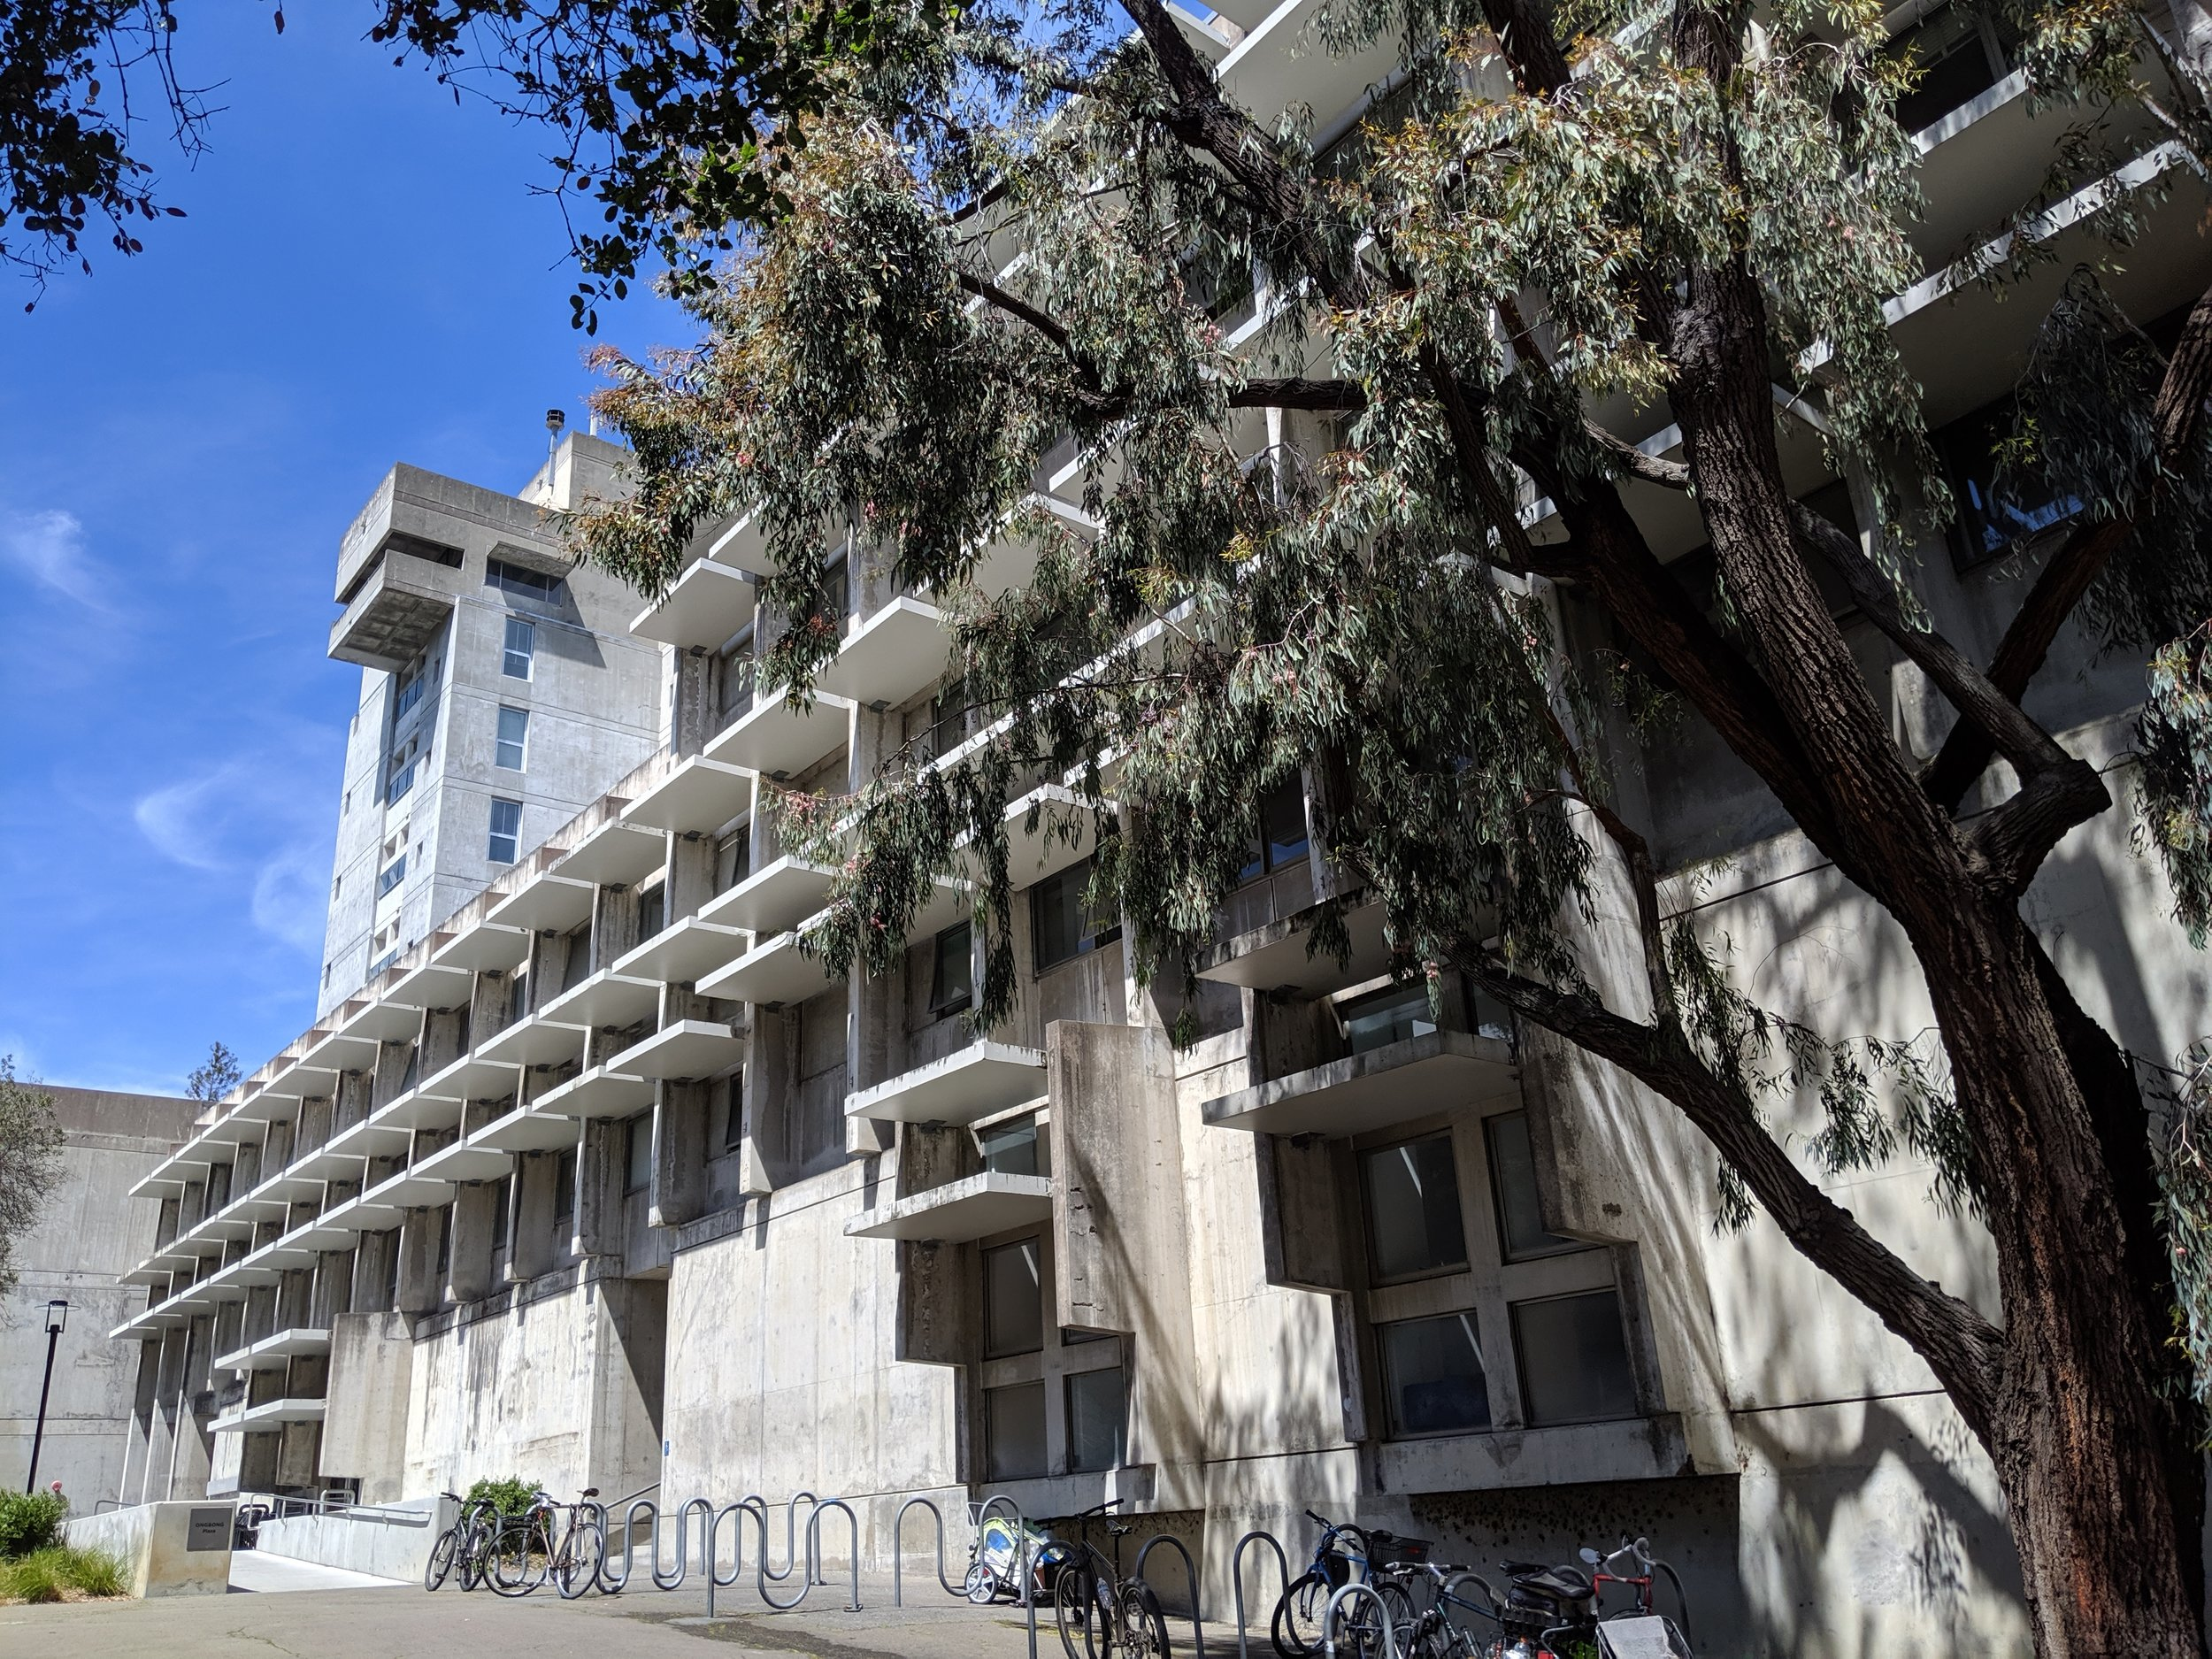 Wurster Hall in all its Brutalist glory. Ceramics, Honors and the Platform are on the Ground Floor.